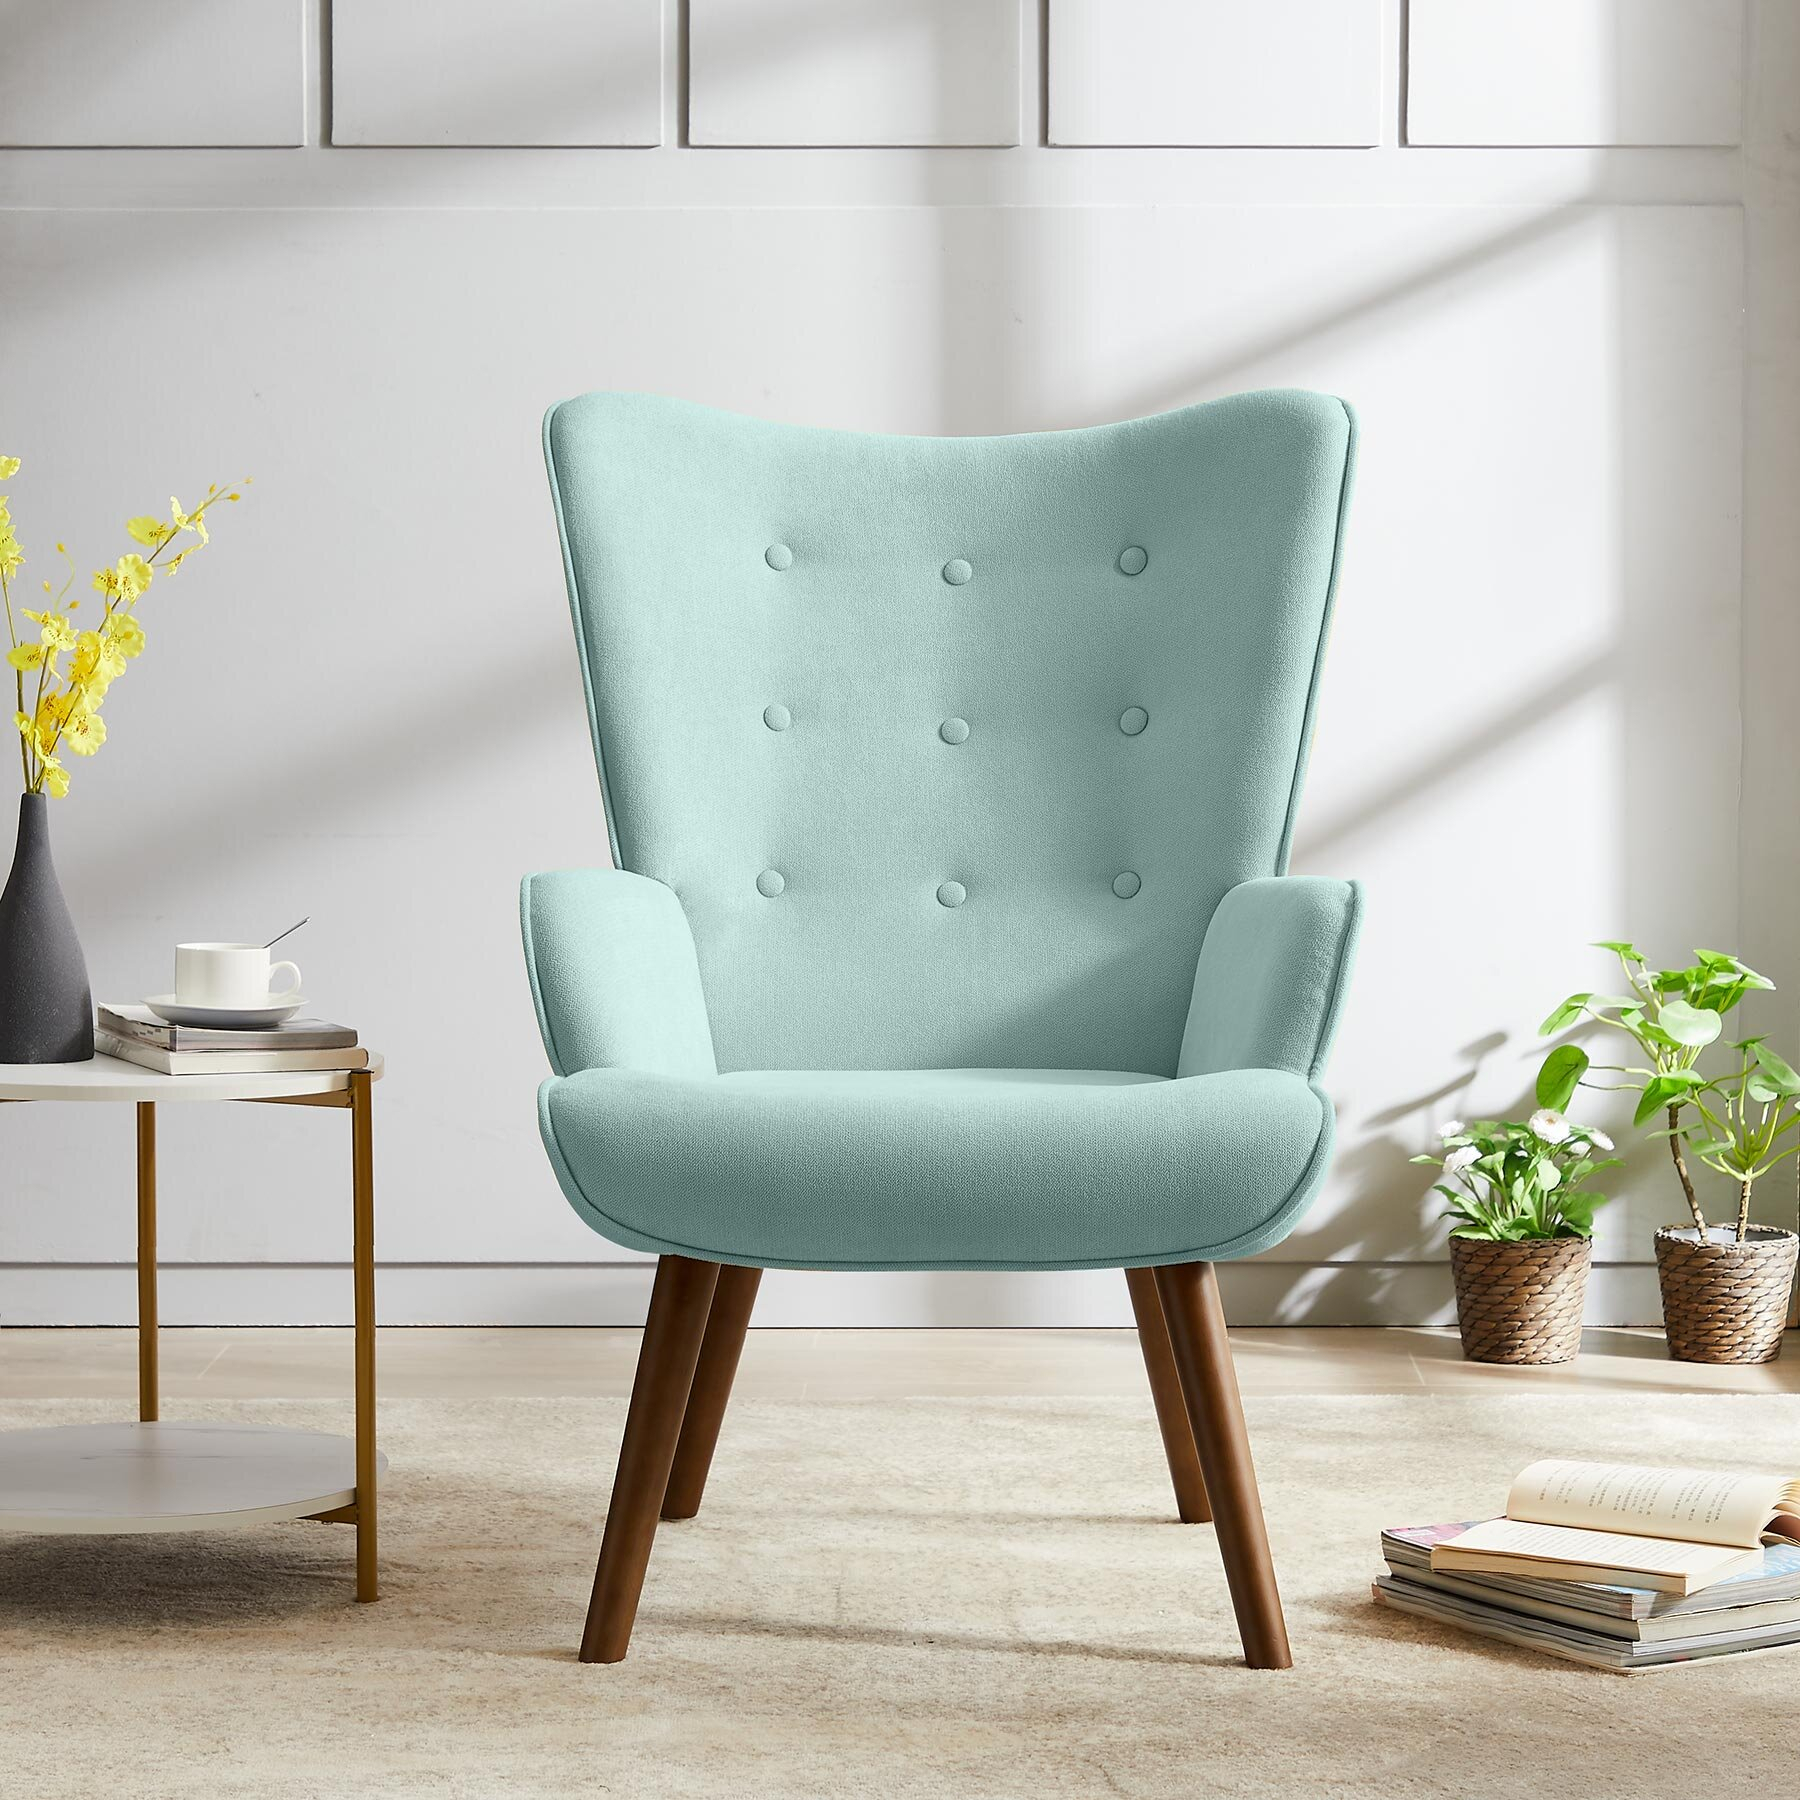 Arm Metal Accent Chairs You'Ll Love In 2021 | Wayfair Within Ragsdale Armchairs (View 9 of 15)